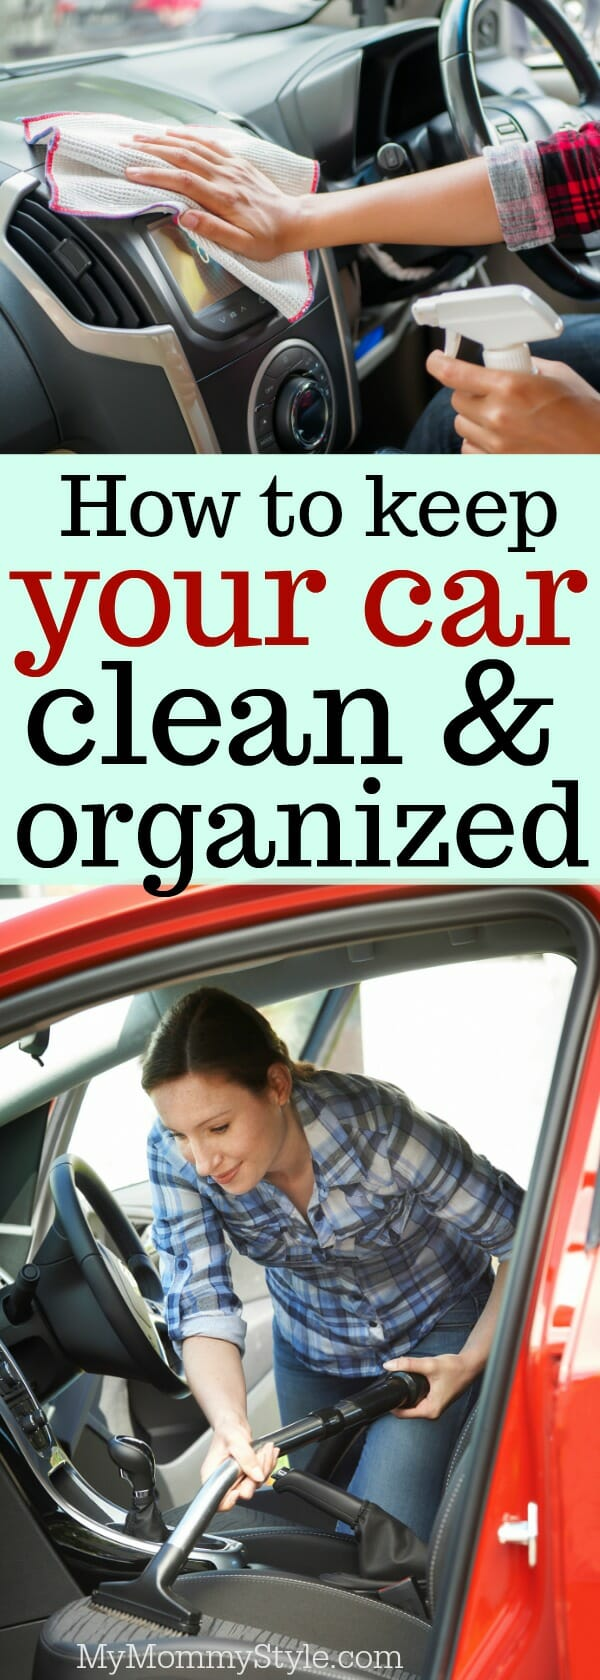 How To Keep The Family Car Clean And Organized My Mommy Style